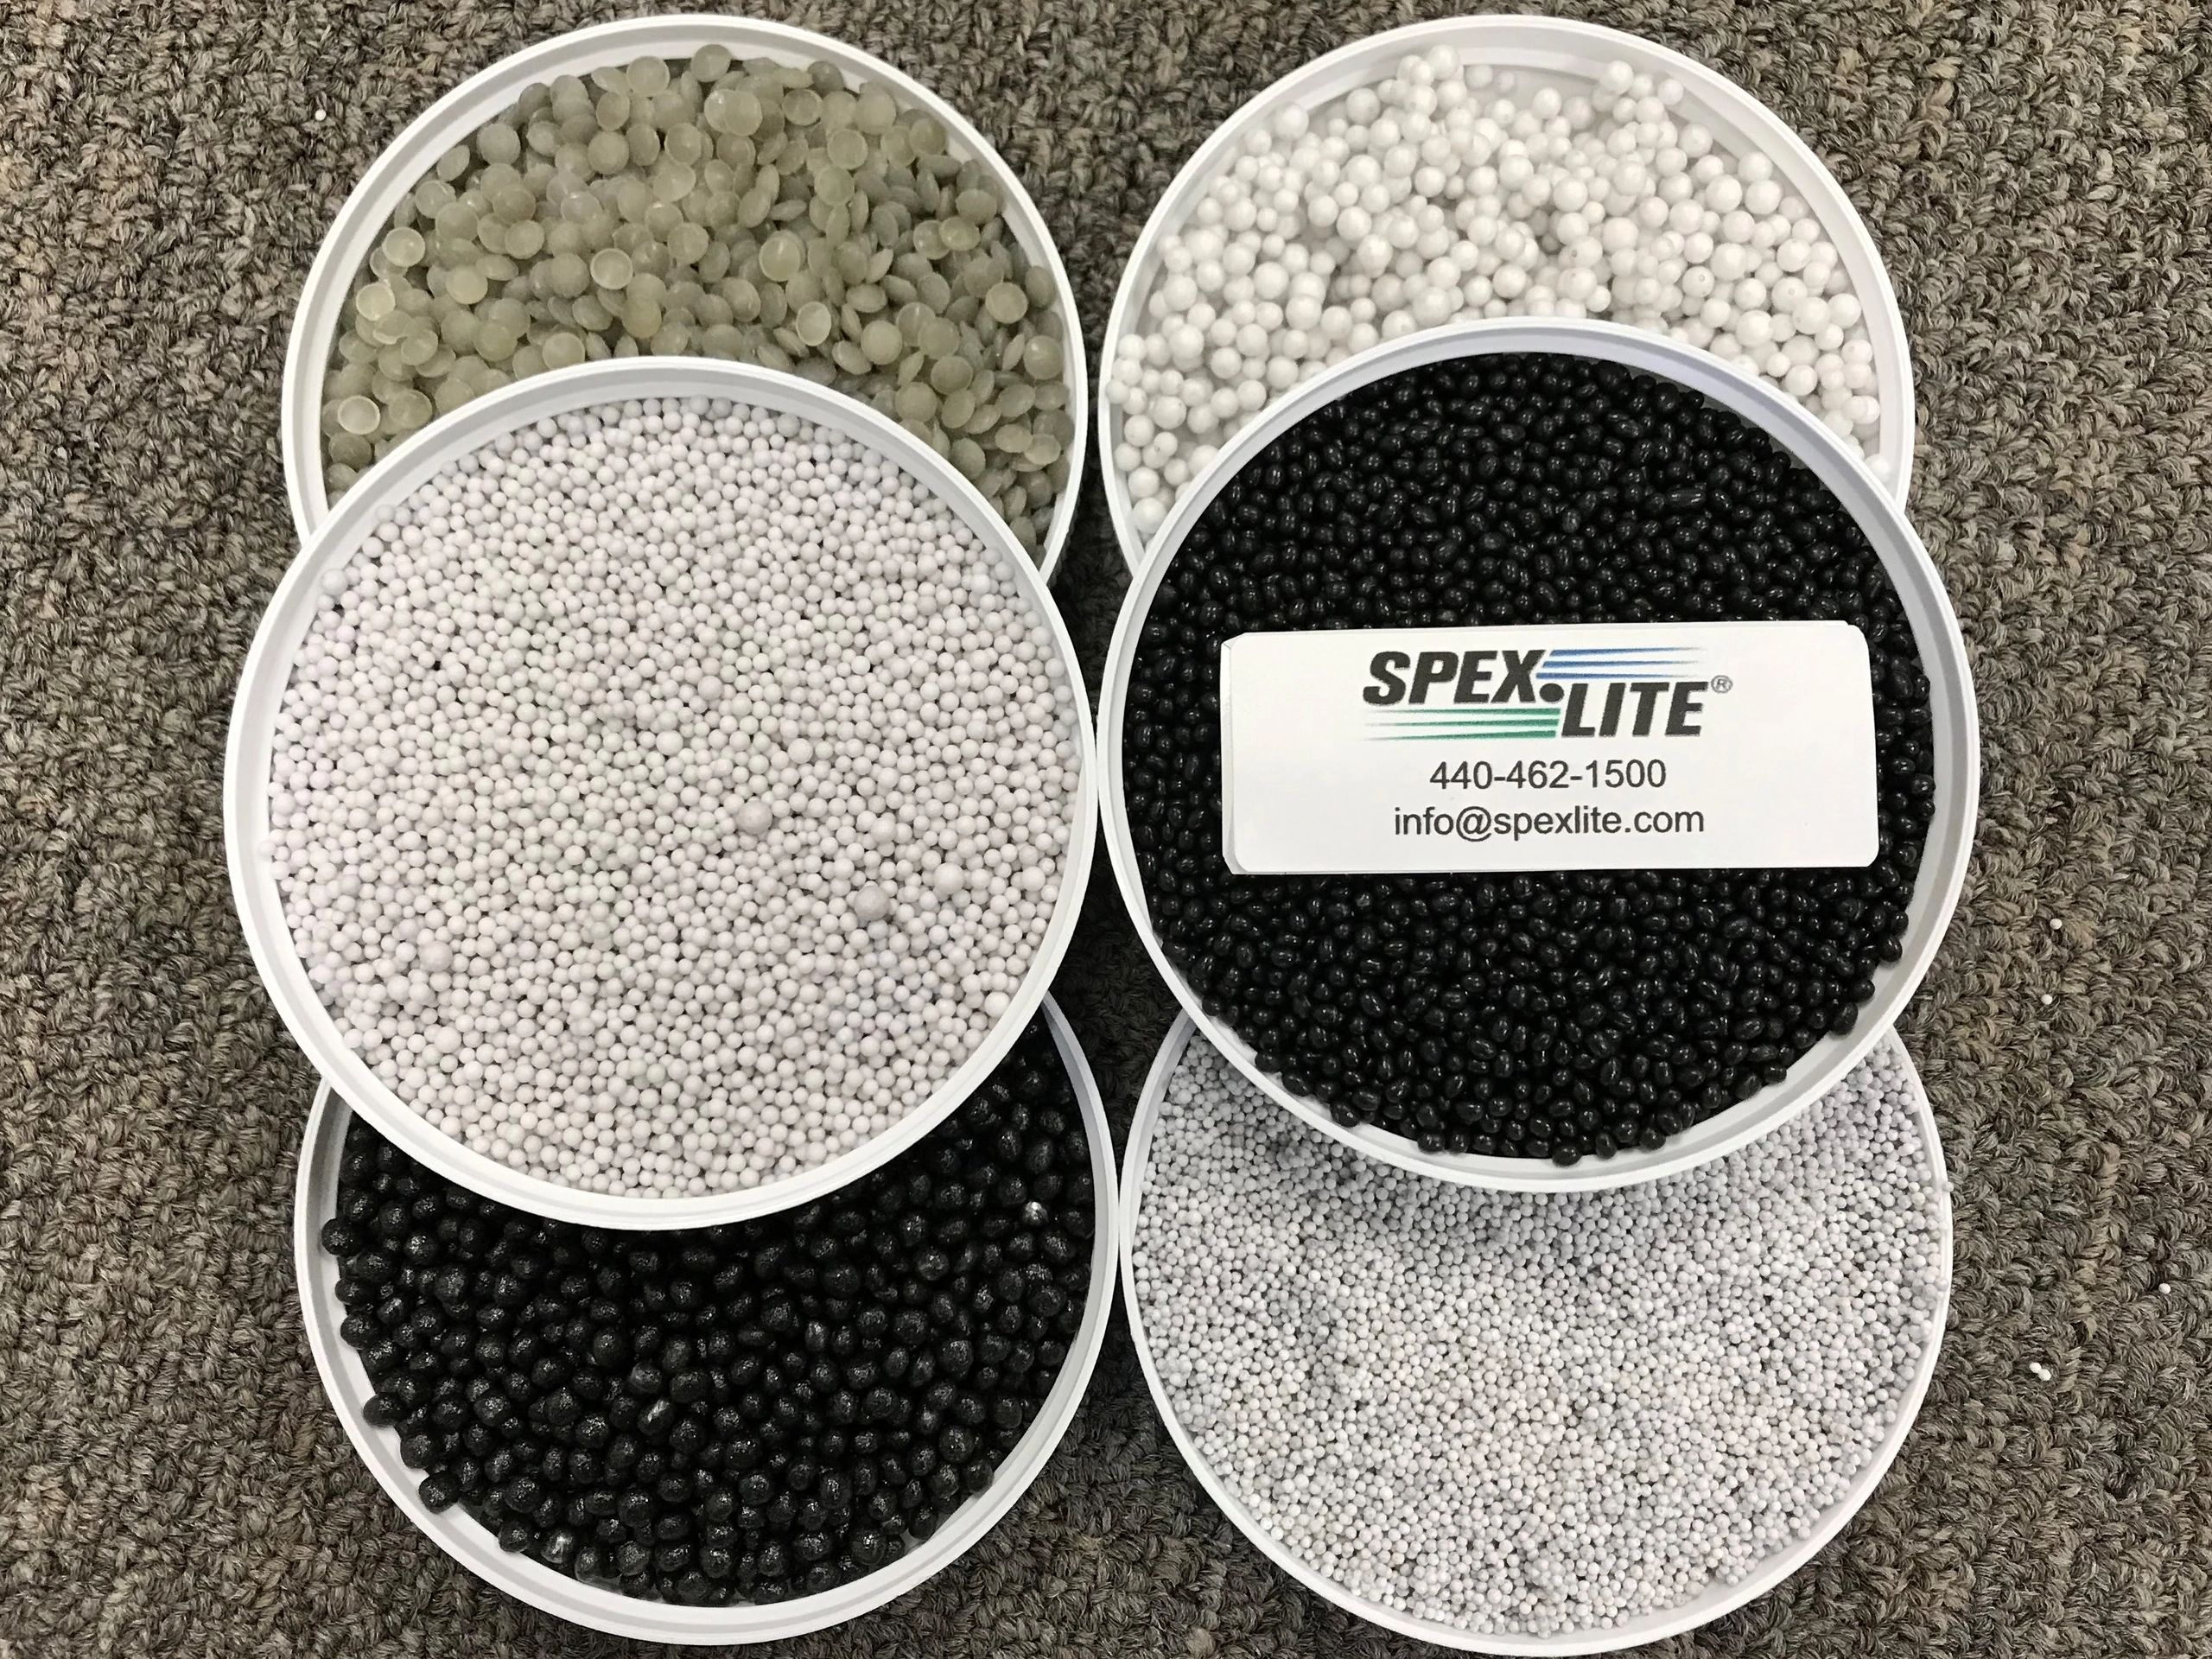 SpexLite Lightweight Fillers and Resin Extenders